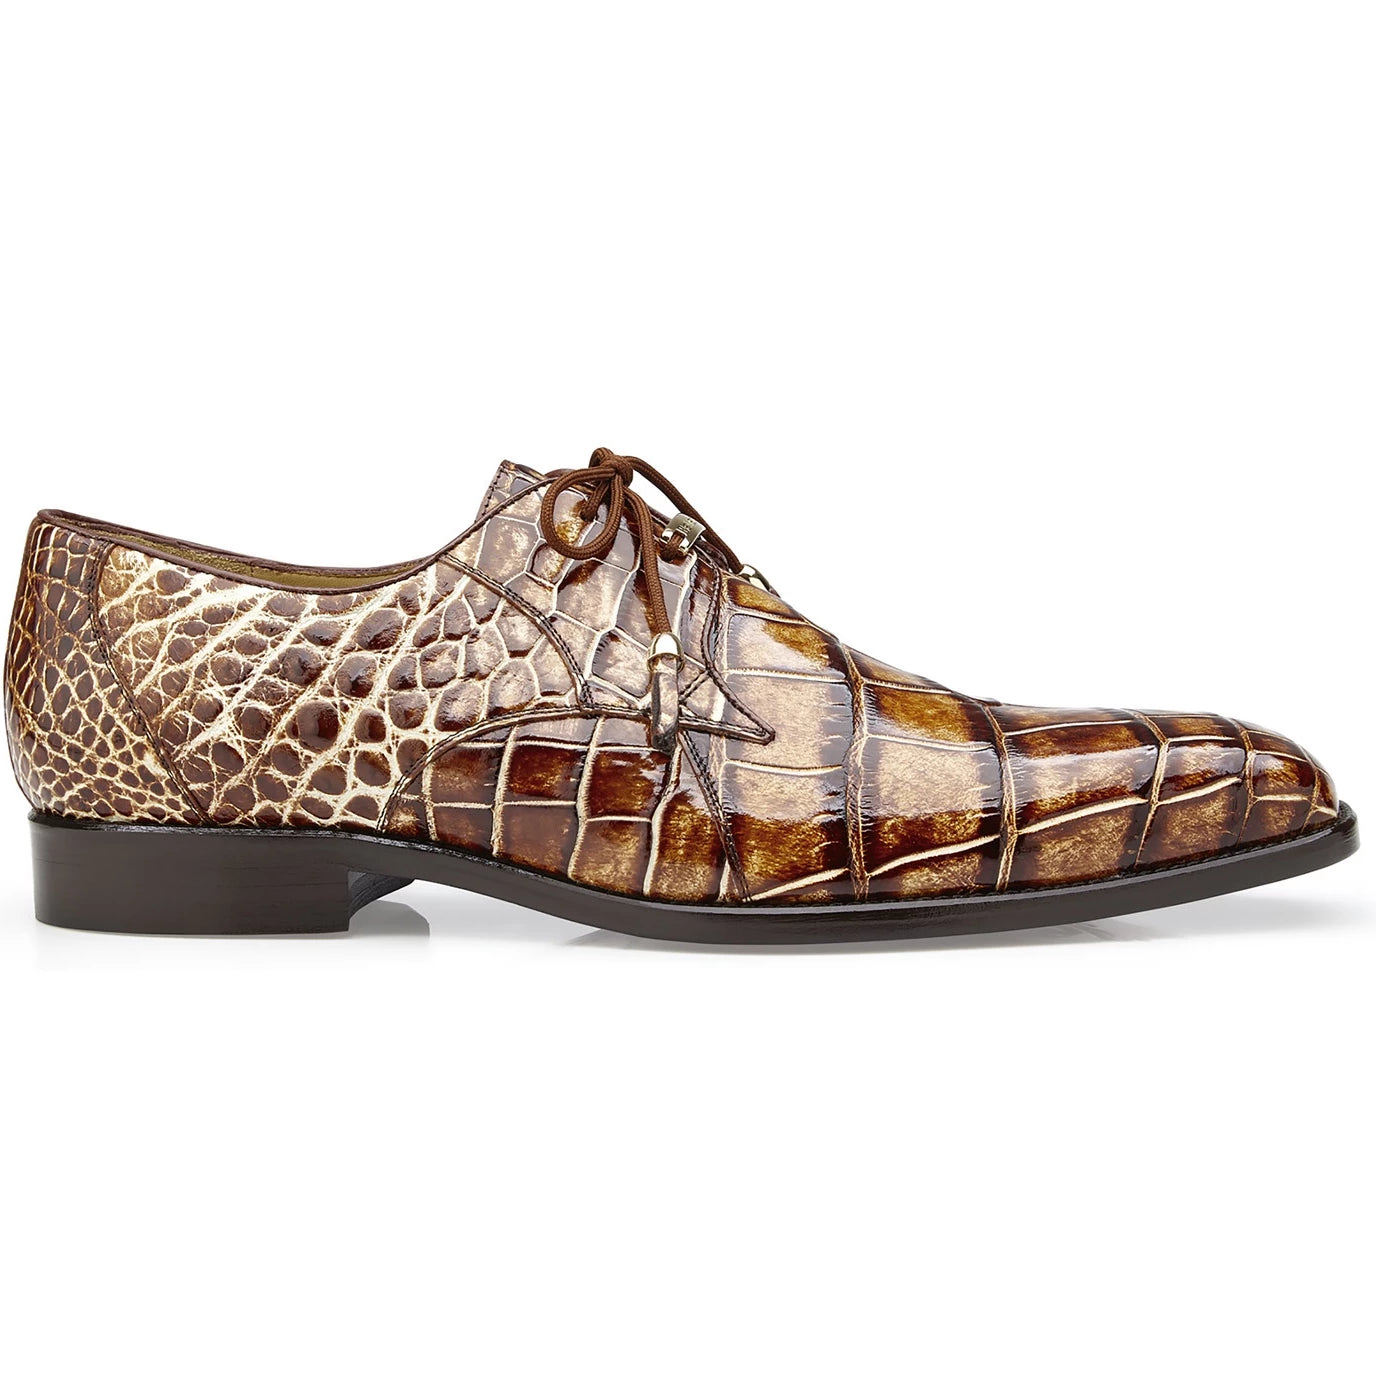 Belvedere Alfred Alligator Skin Lace Up Oxford - Caramel - Dapperfam.com